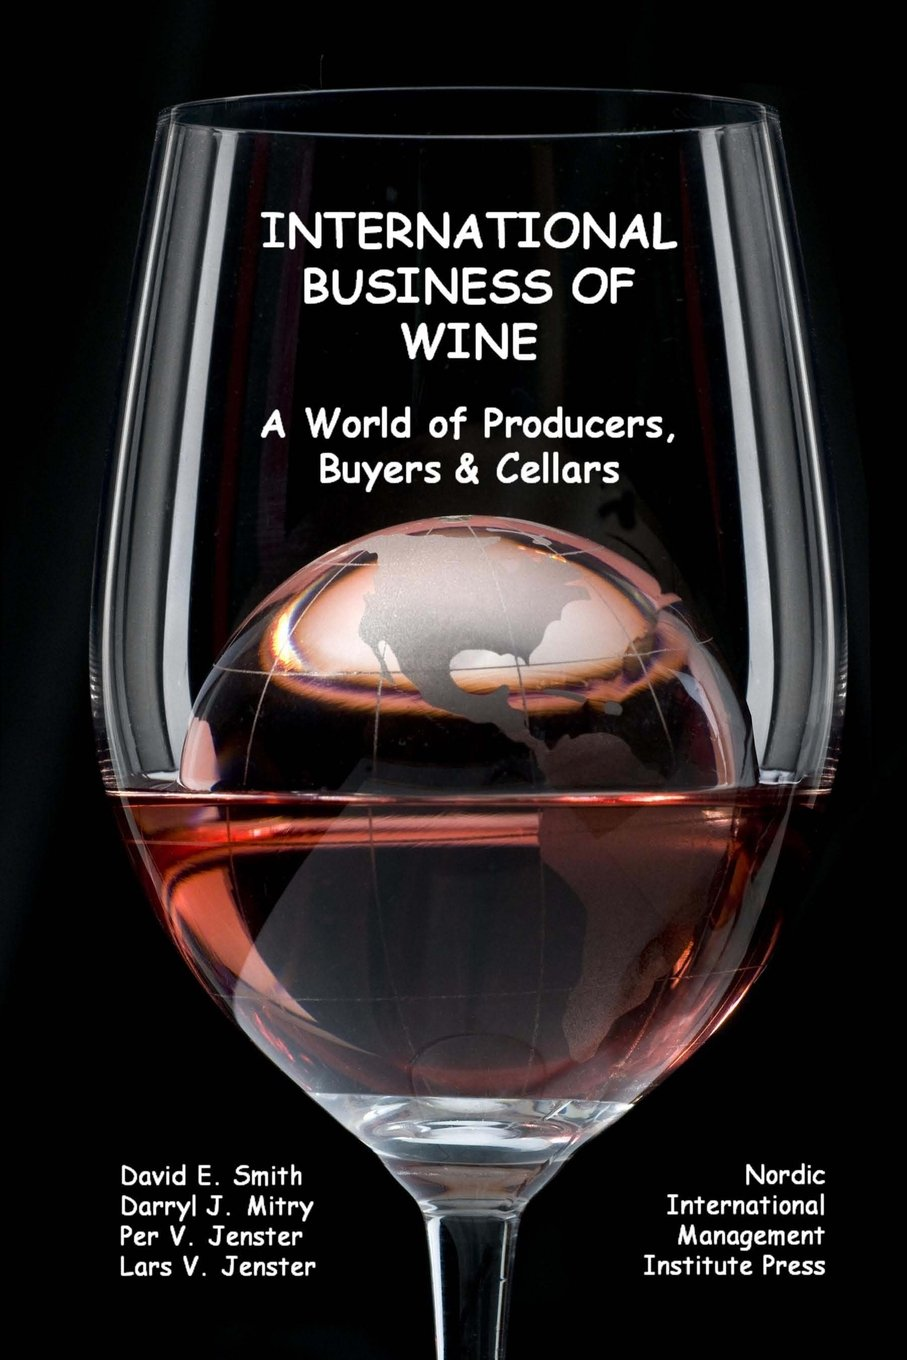 Download International Business of Wine: a World of Producers, Buyers & Cellars ebook